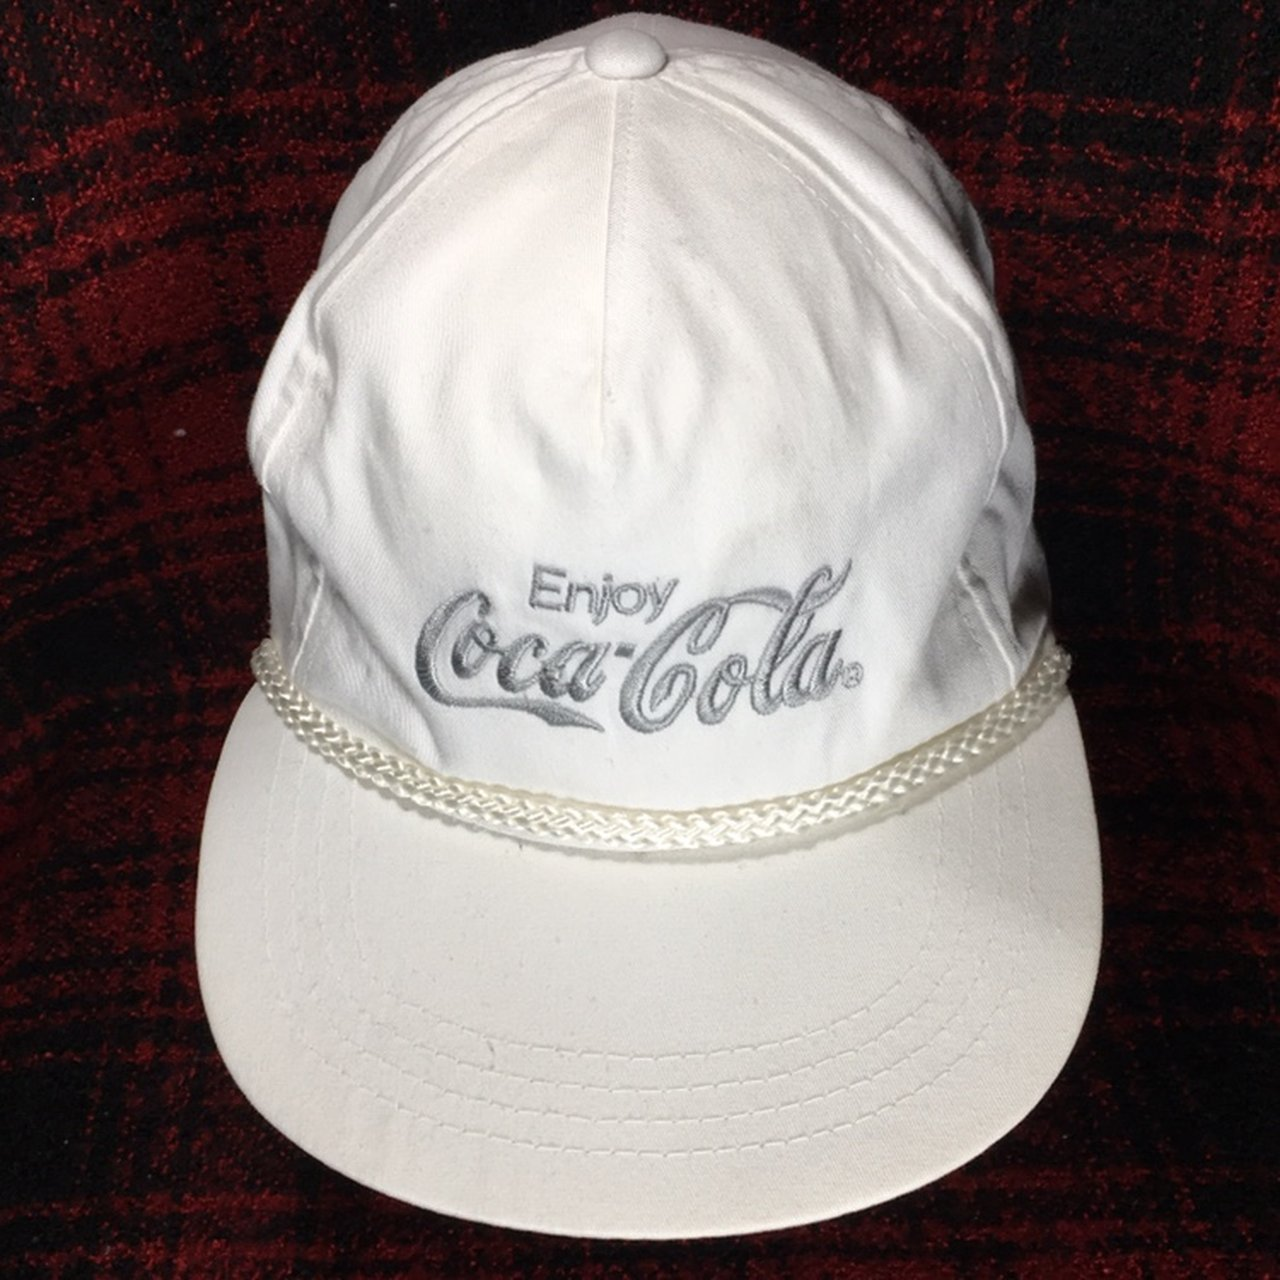 What s better than enjoying a cold Coke  Enjoying a cold a a - Depop 44d067bd0d8d